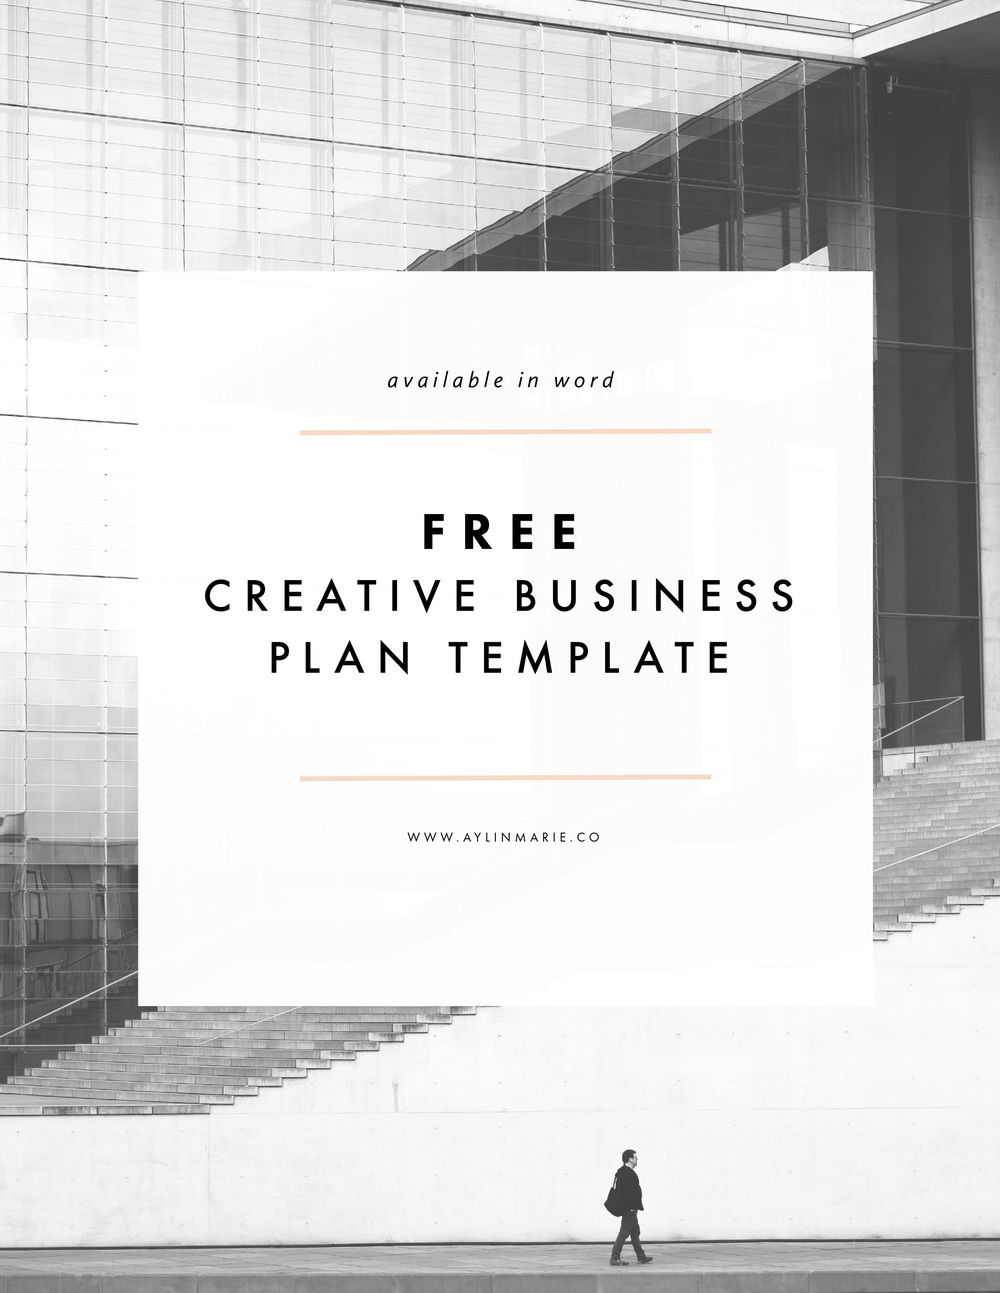 freebie creative business plan template aylin marie